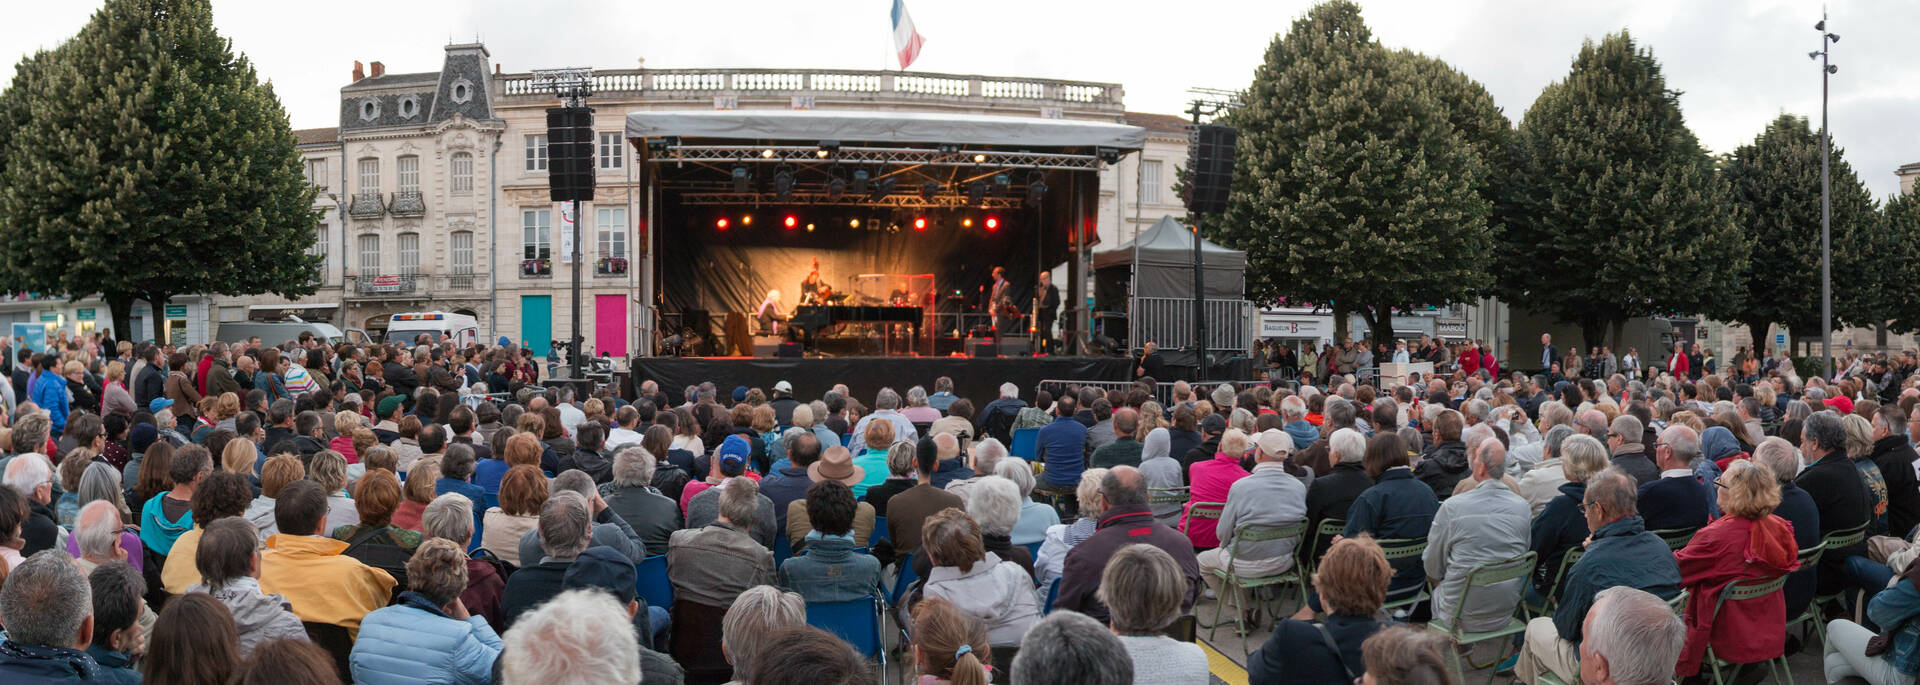 Rochefort celebrates the 50 years anniversay  of the Demoiselles of Rochefort with a concert of Michel Legrand, Place Colbert - © David Compain - Ville de Rochefort